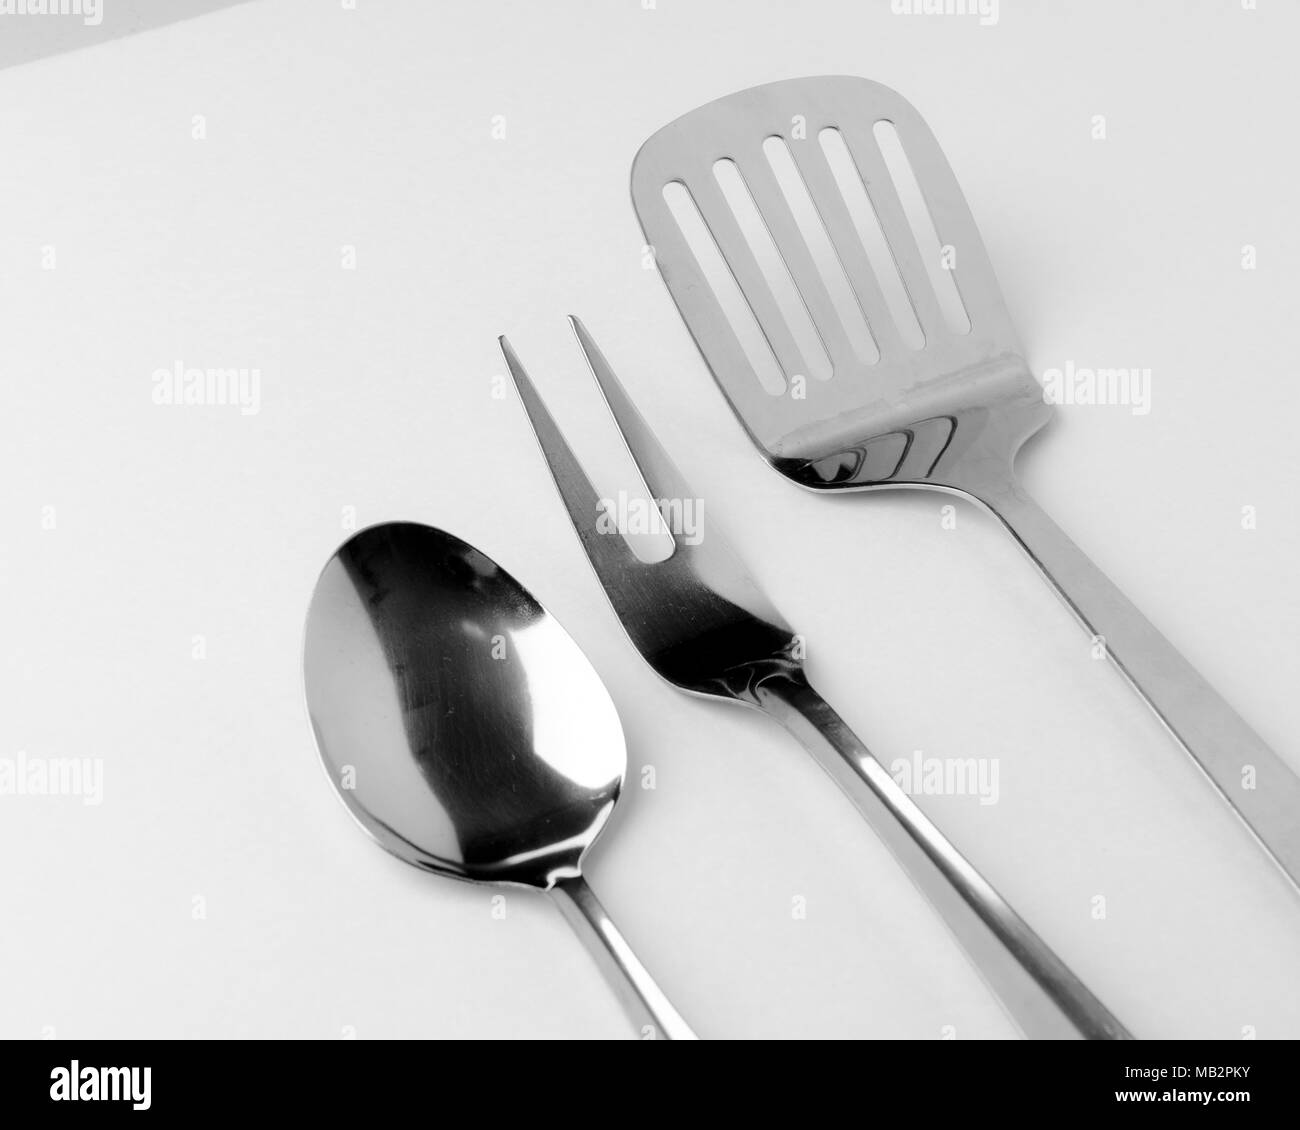 Kitchen Utensil Whisk Beater utensils used in kitchen to make food and projects - Stock Image